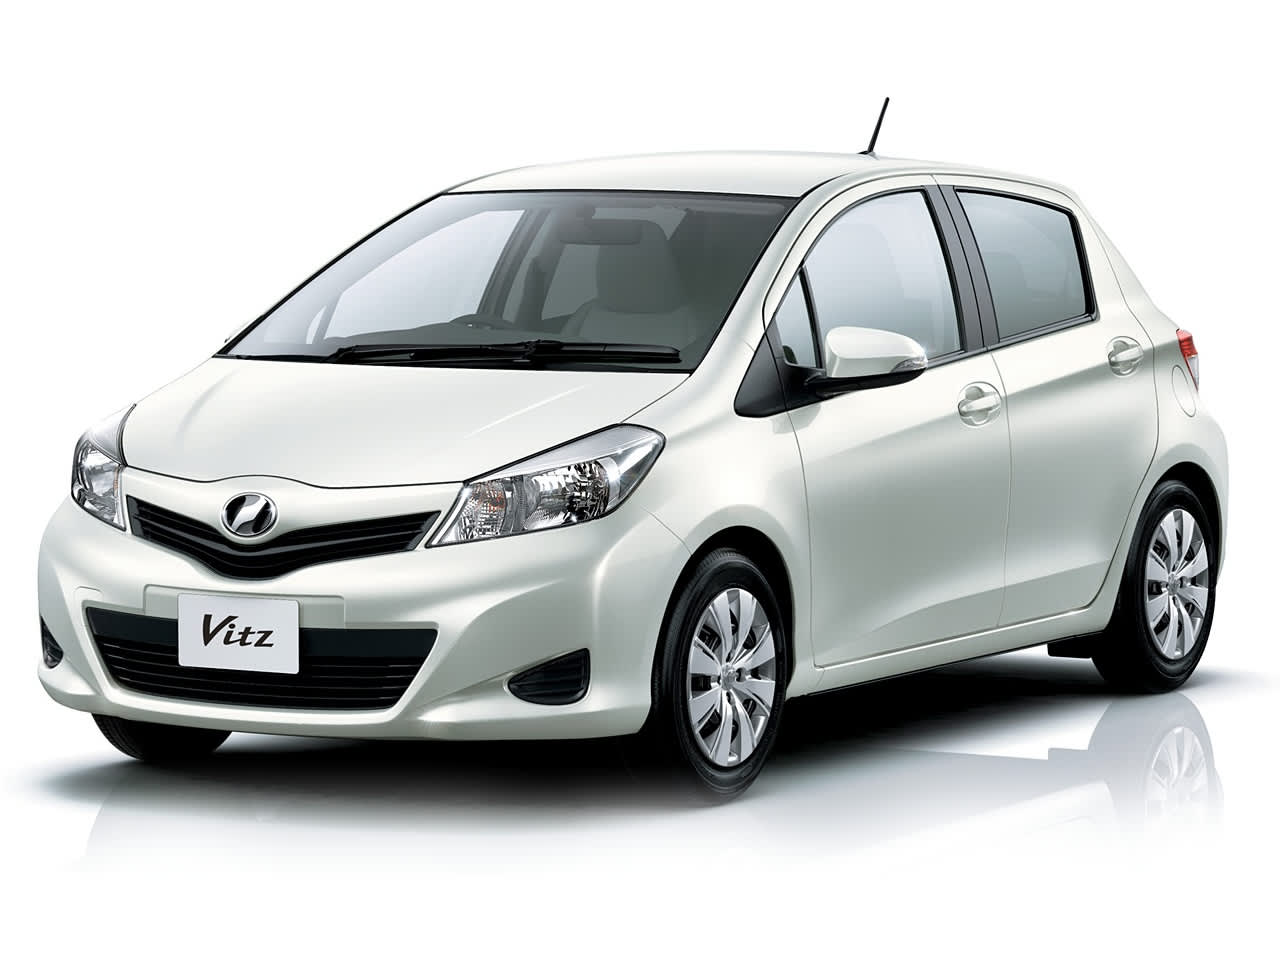 vitz 1-3 day car rental okinawa